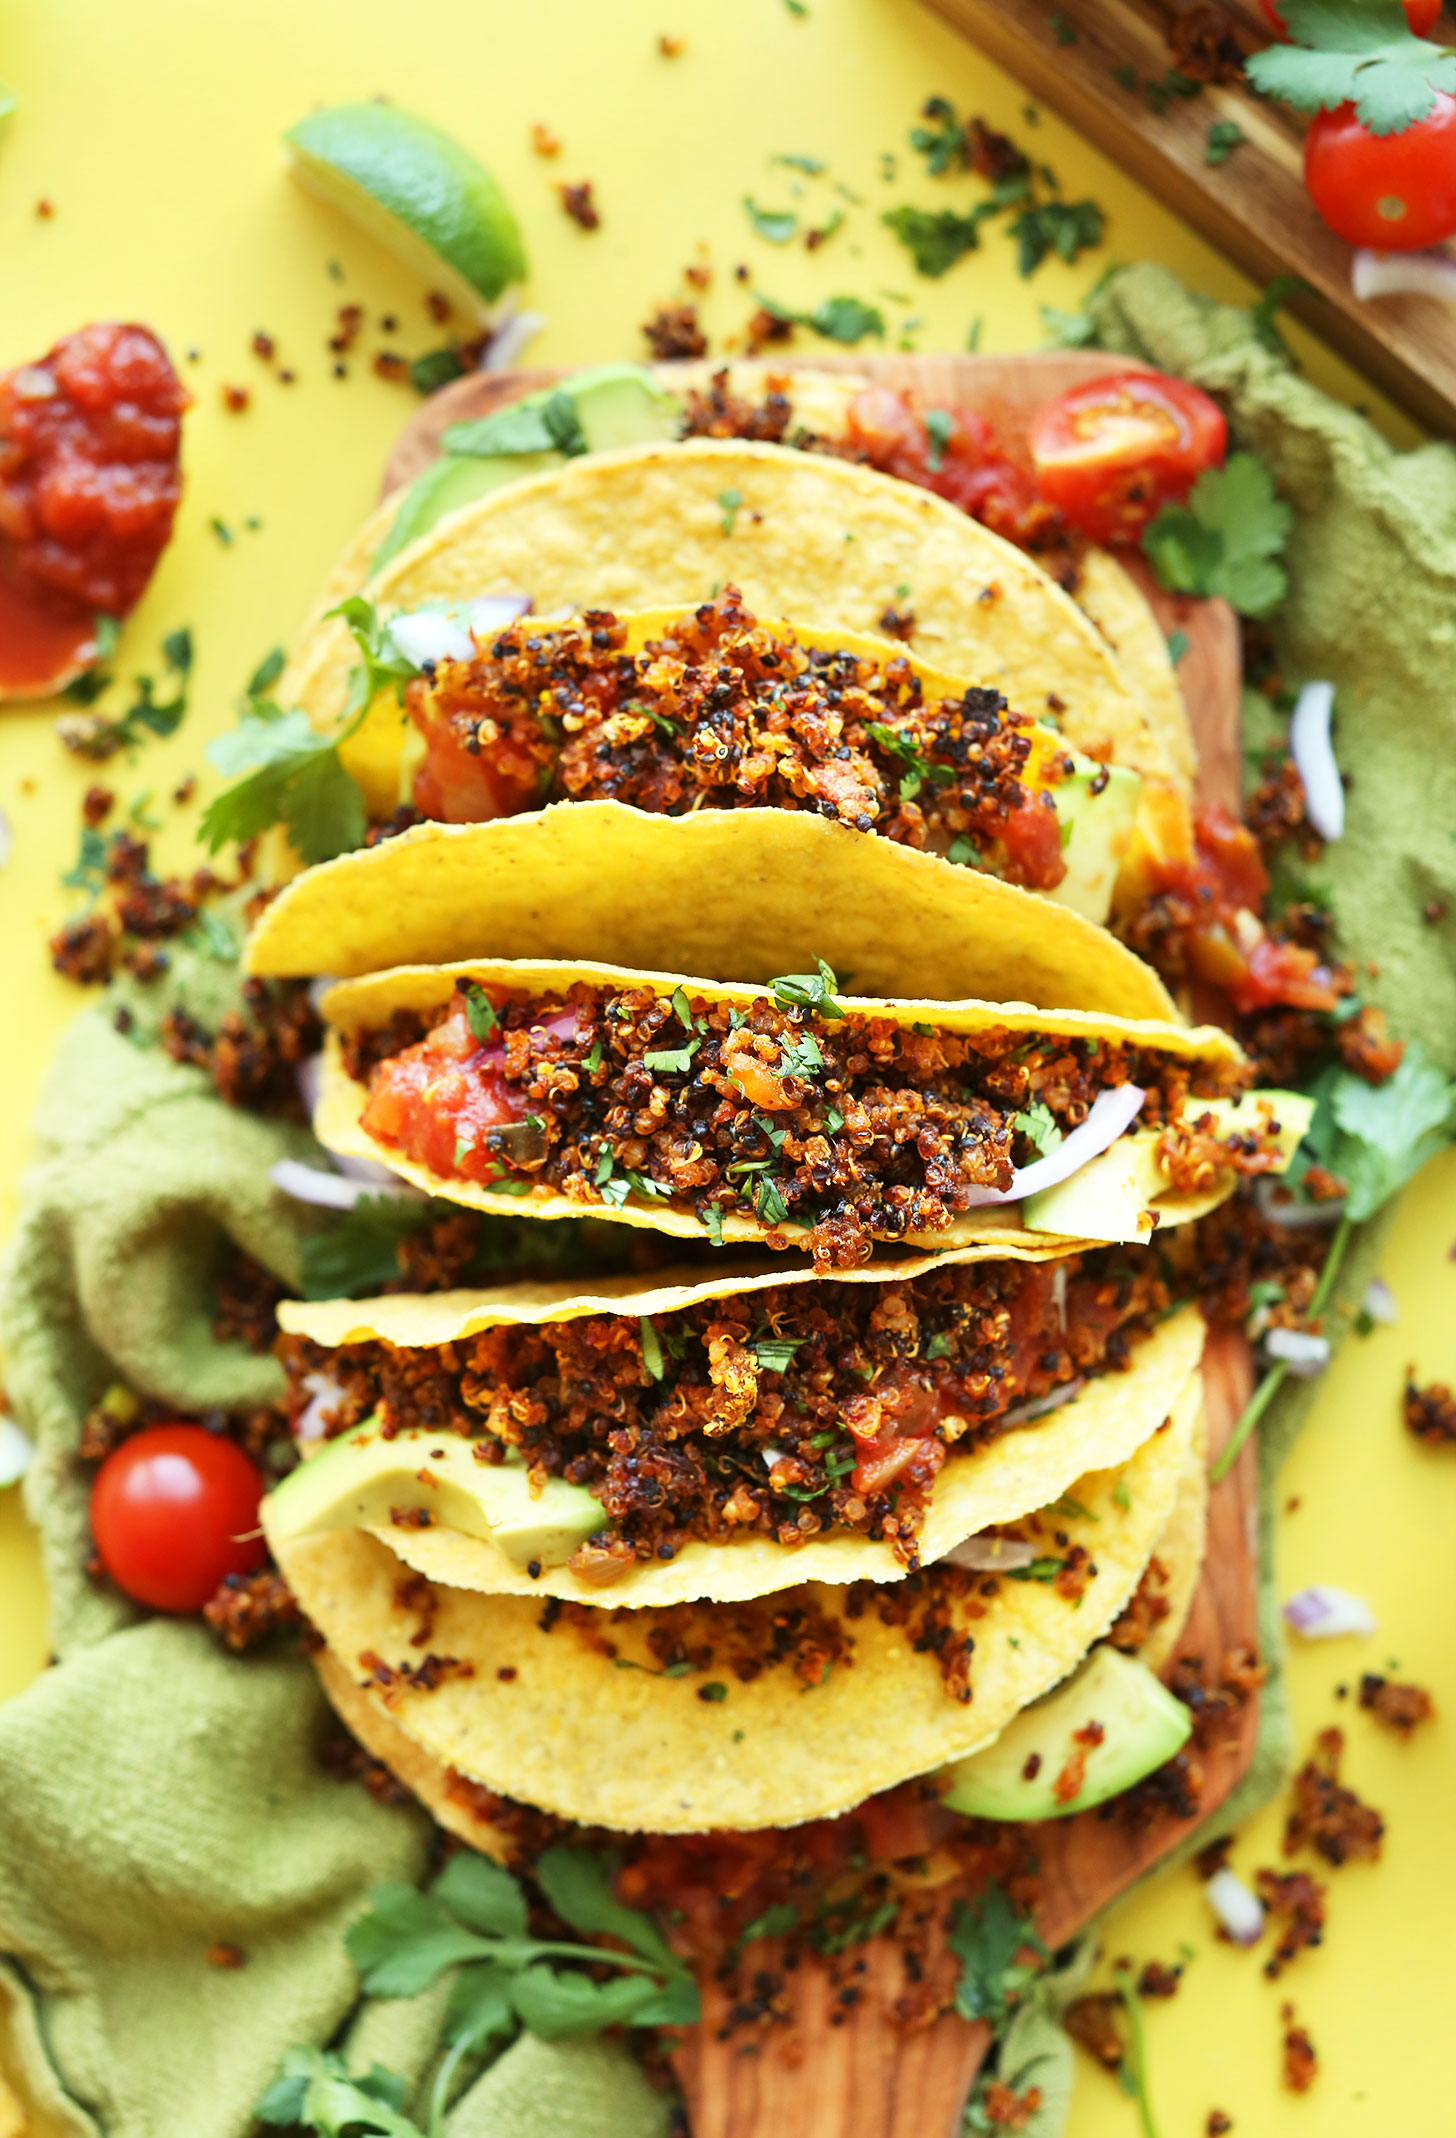 Quinoa taco meat minimalist baker recipes several corn tortillas with easy quinoa taco meat for a healthy gluten free vegan meal forumfinder Choice Image